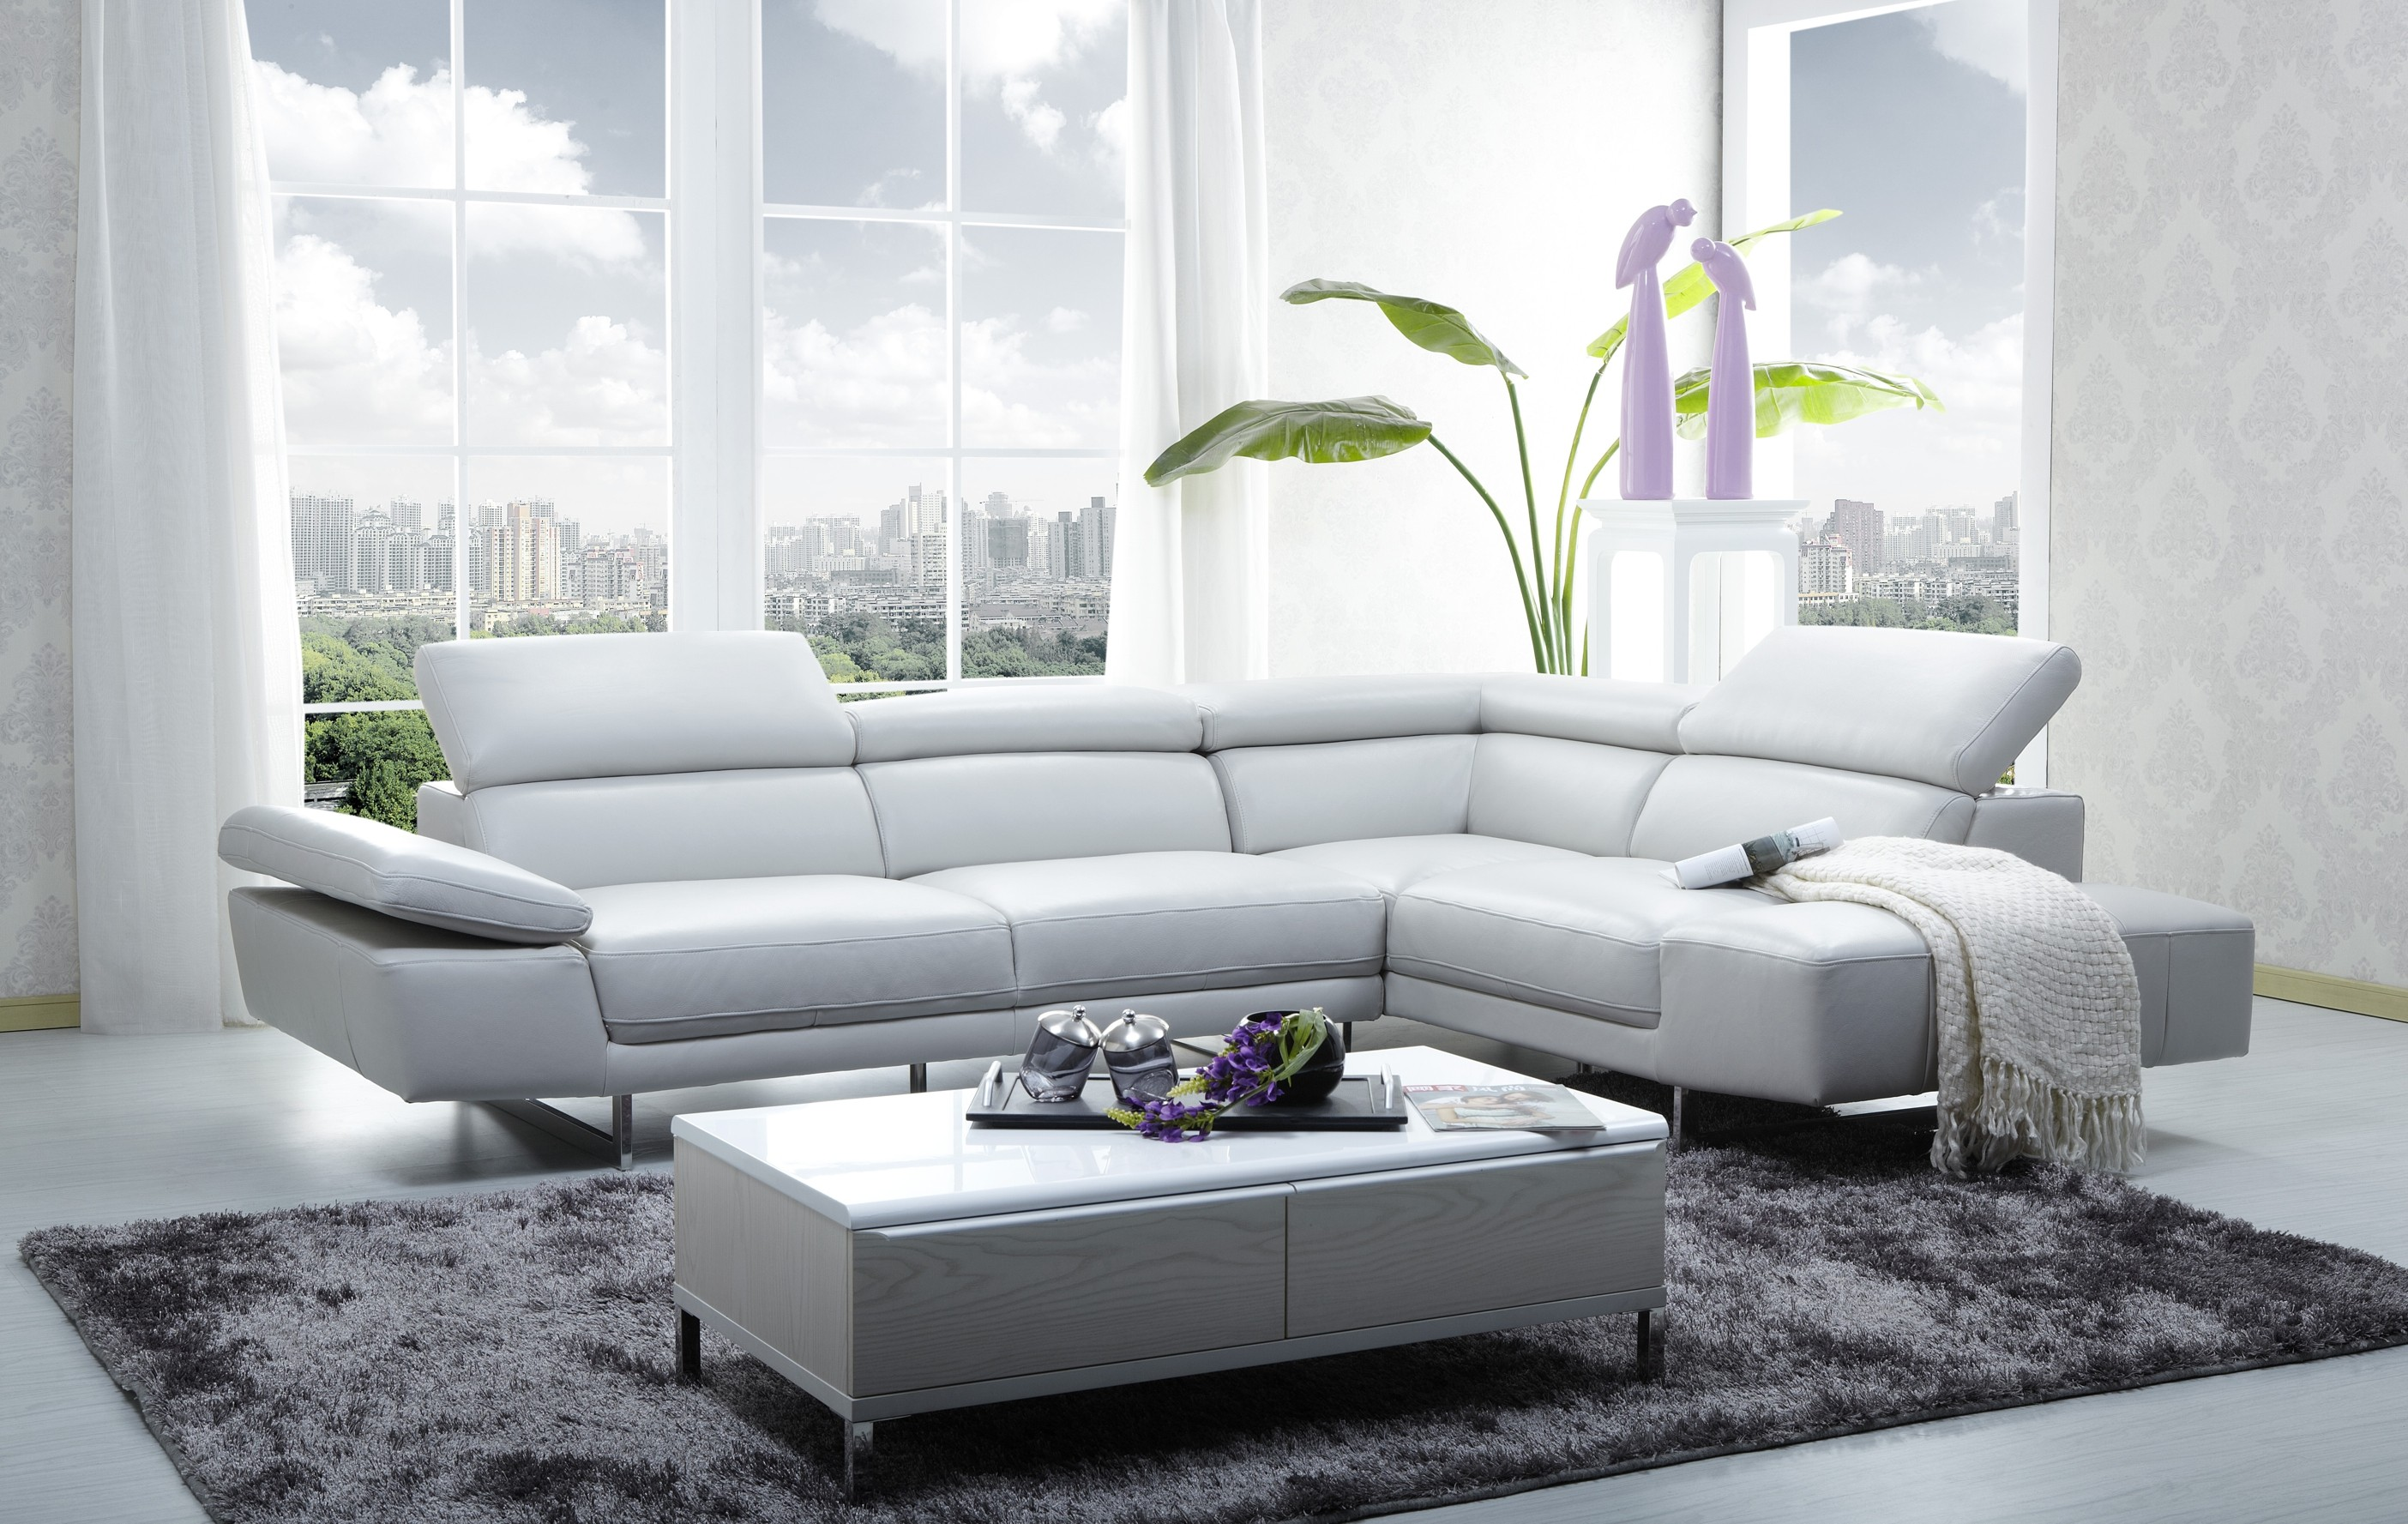 ... Small Apartment Design Interior With White Sectional Sofa Beds